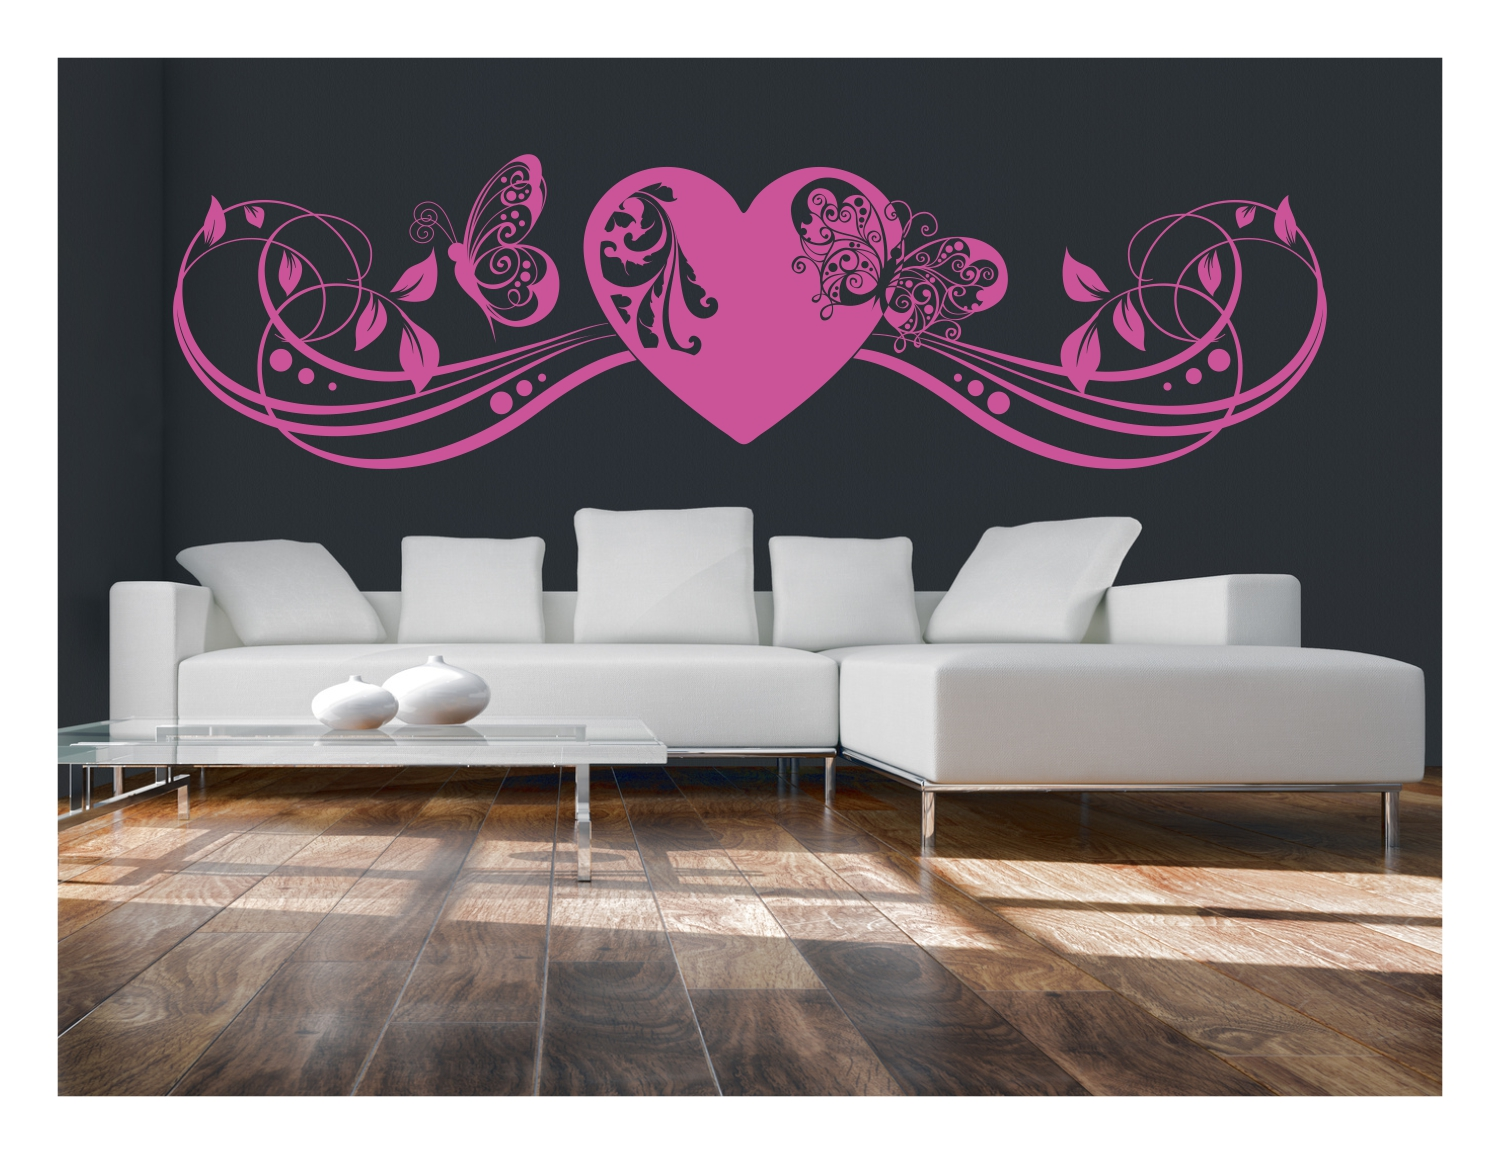 wandtattoo herz liebe schmetterling schlafzimmer ranke aufkleber tattoo 301 ebay. Black Bedroom Furniture Sets. Home Design Ideas